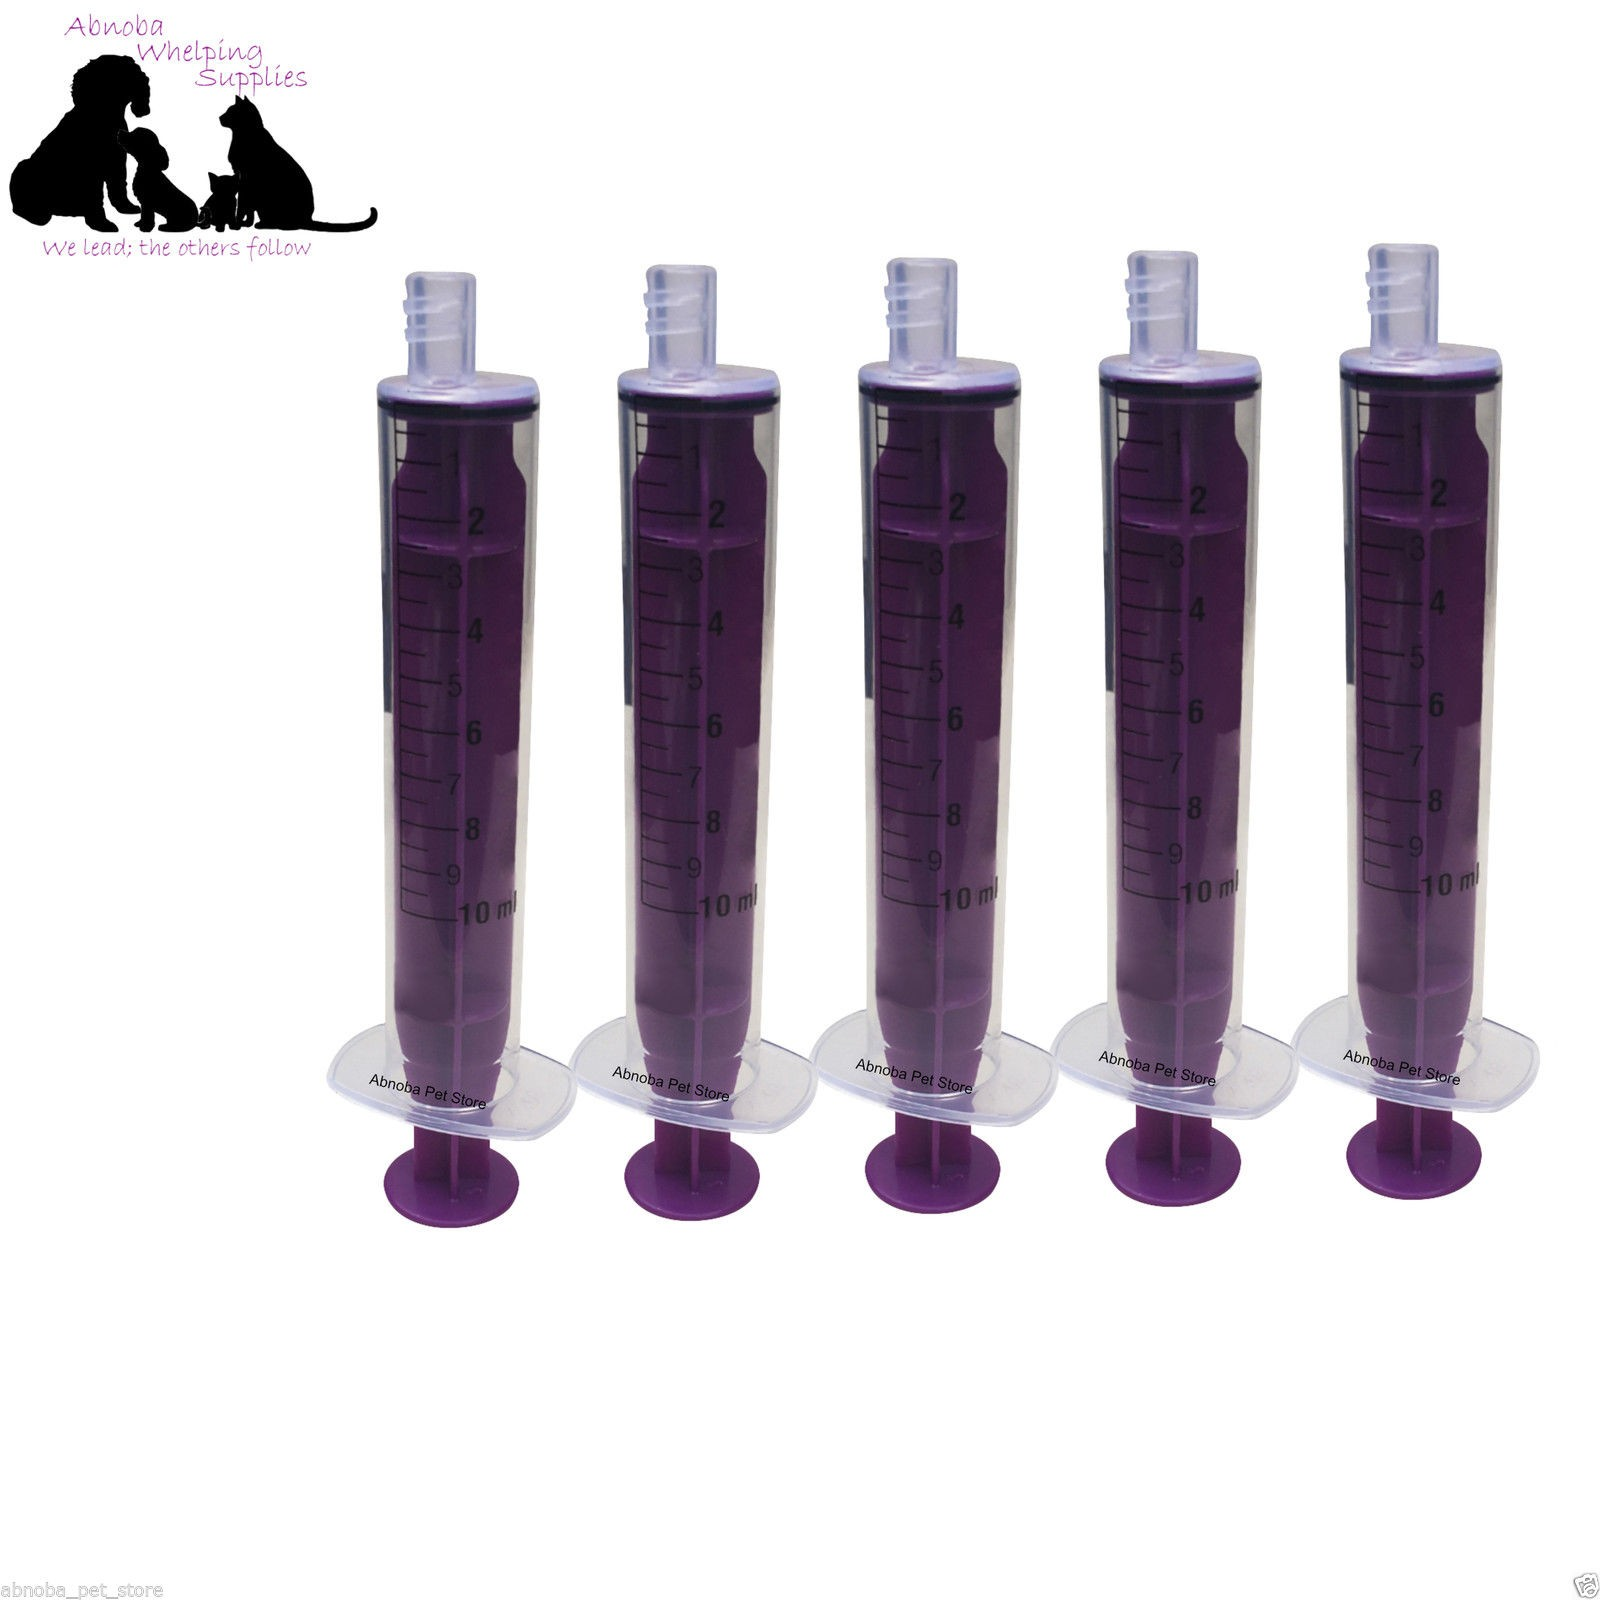 5 x.10ml Replacement Syringes